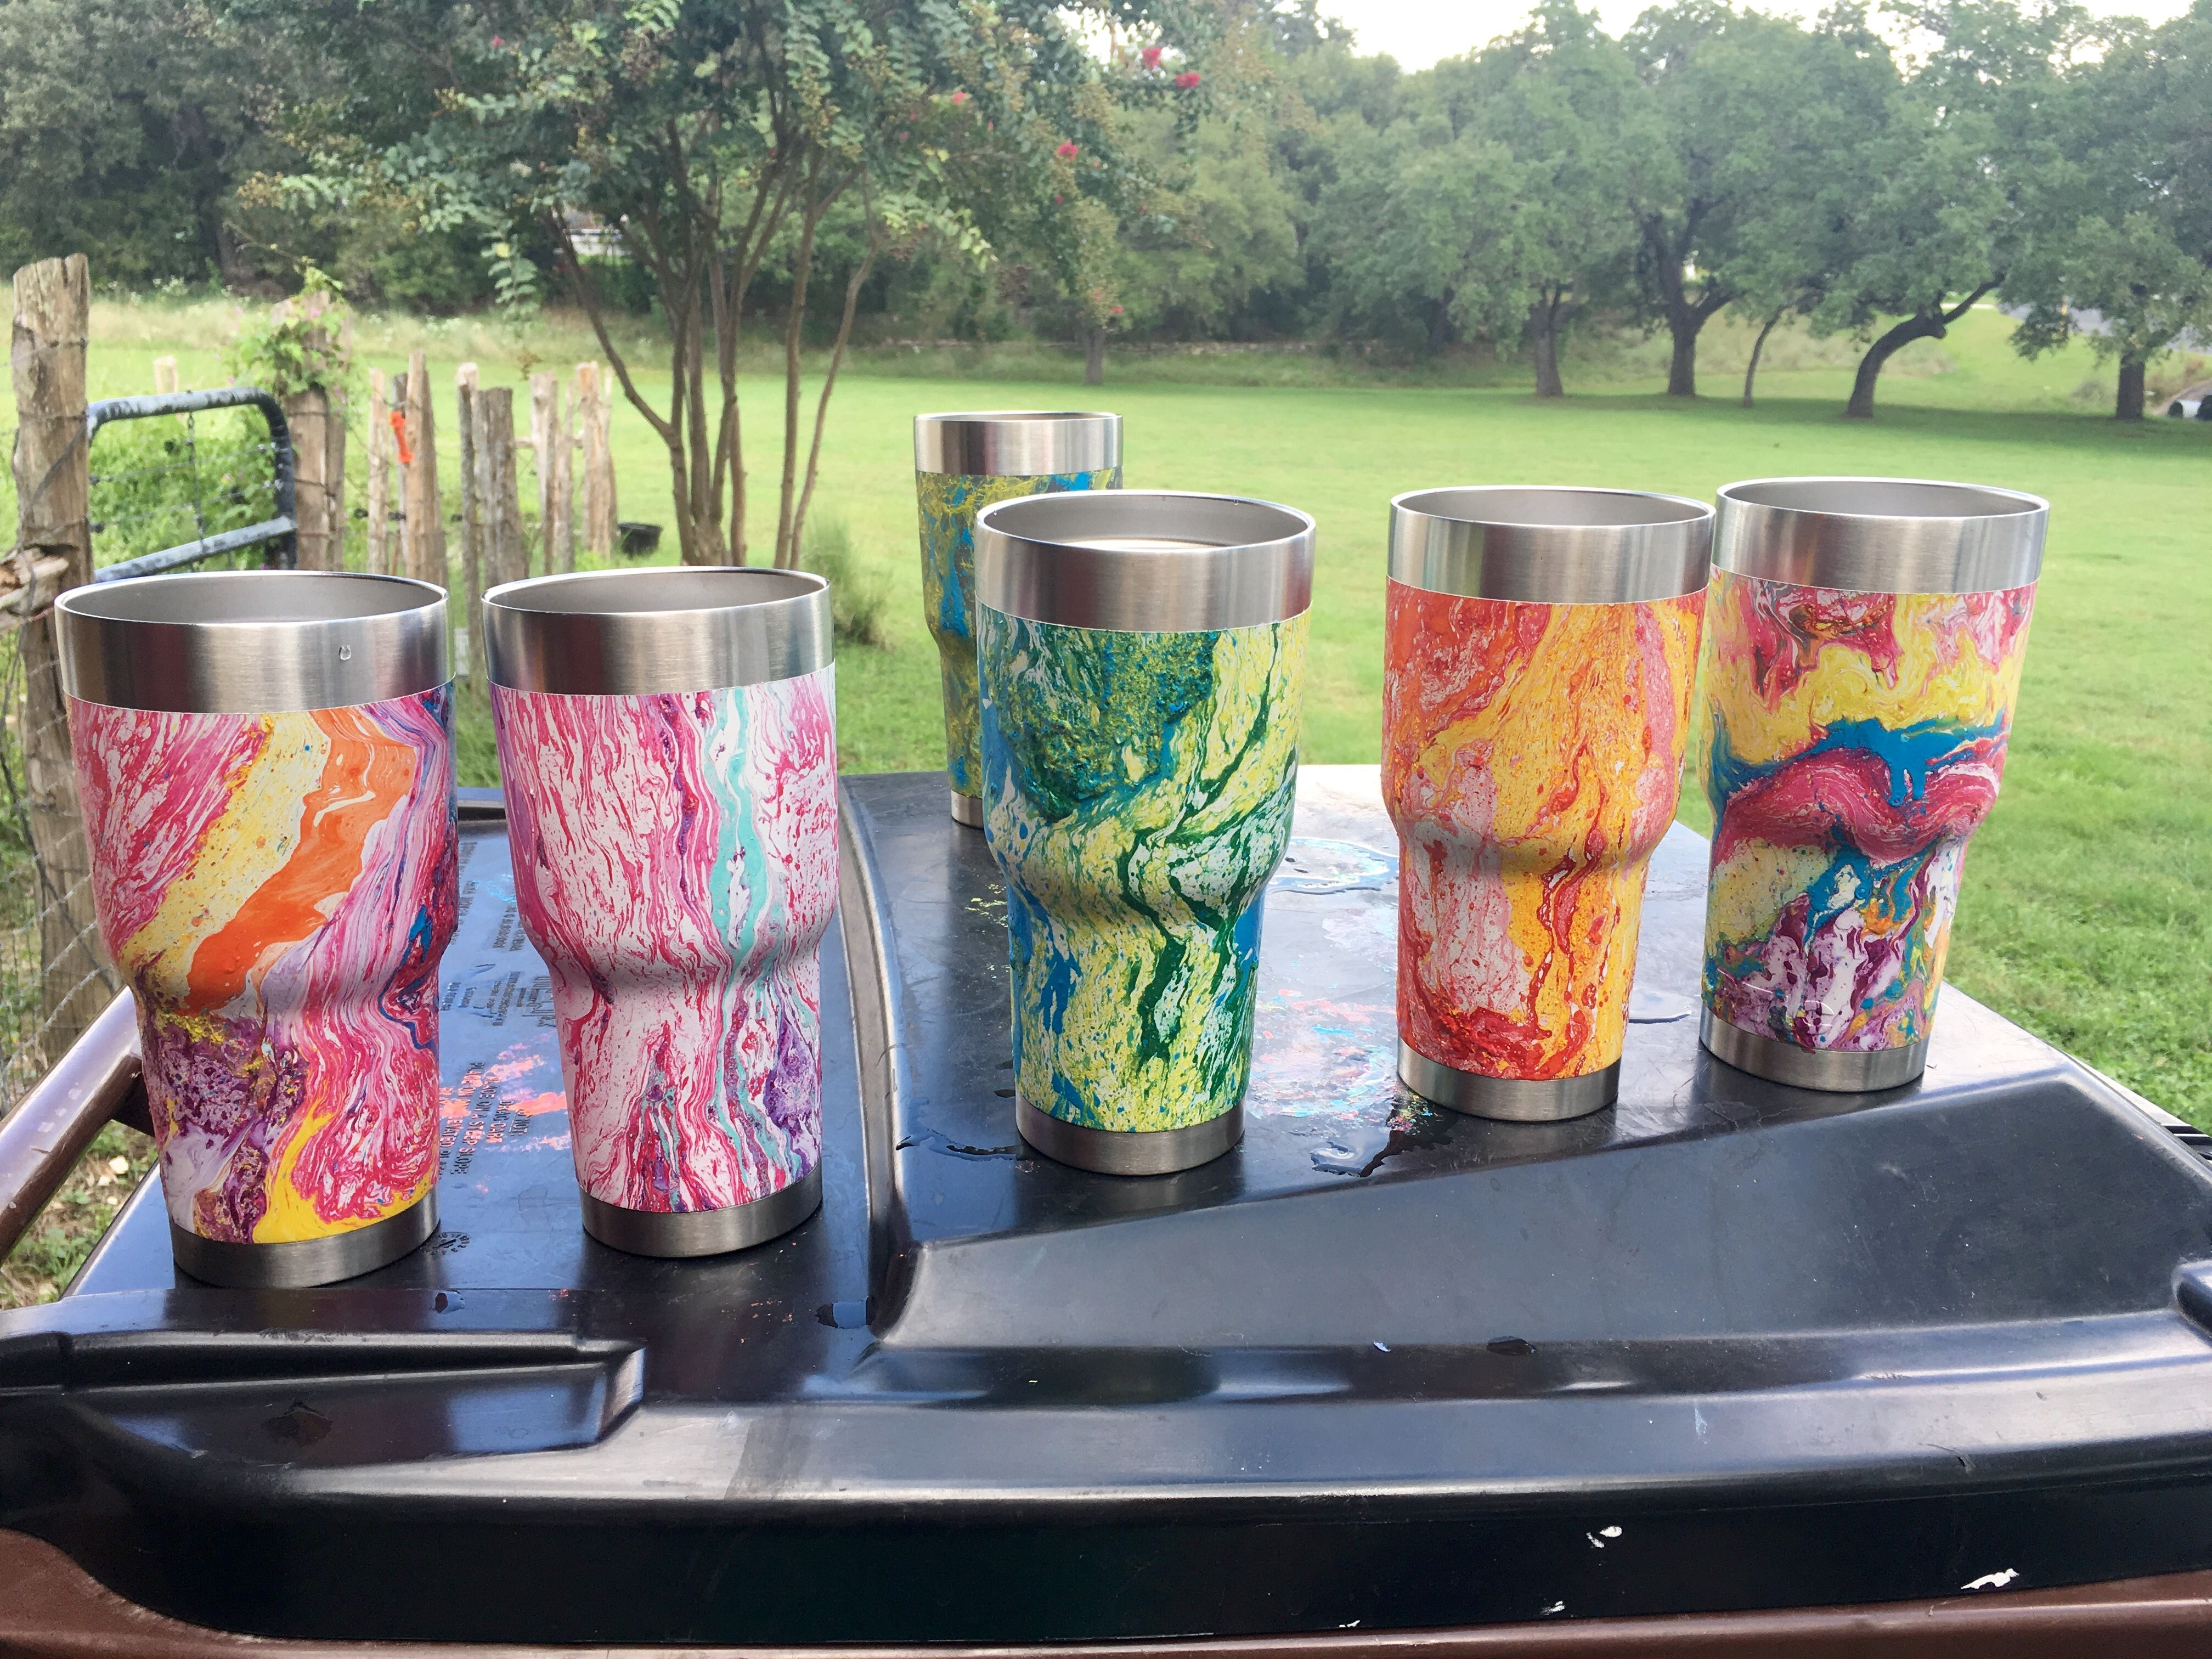 Hydro Dipped In Spray Paint Cups Tumbler Cups Diy Paint Dipping Diy Tumblers